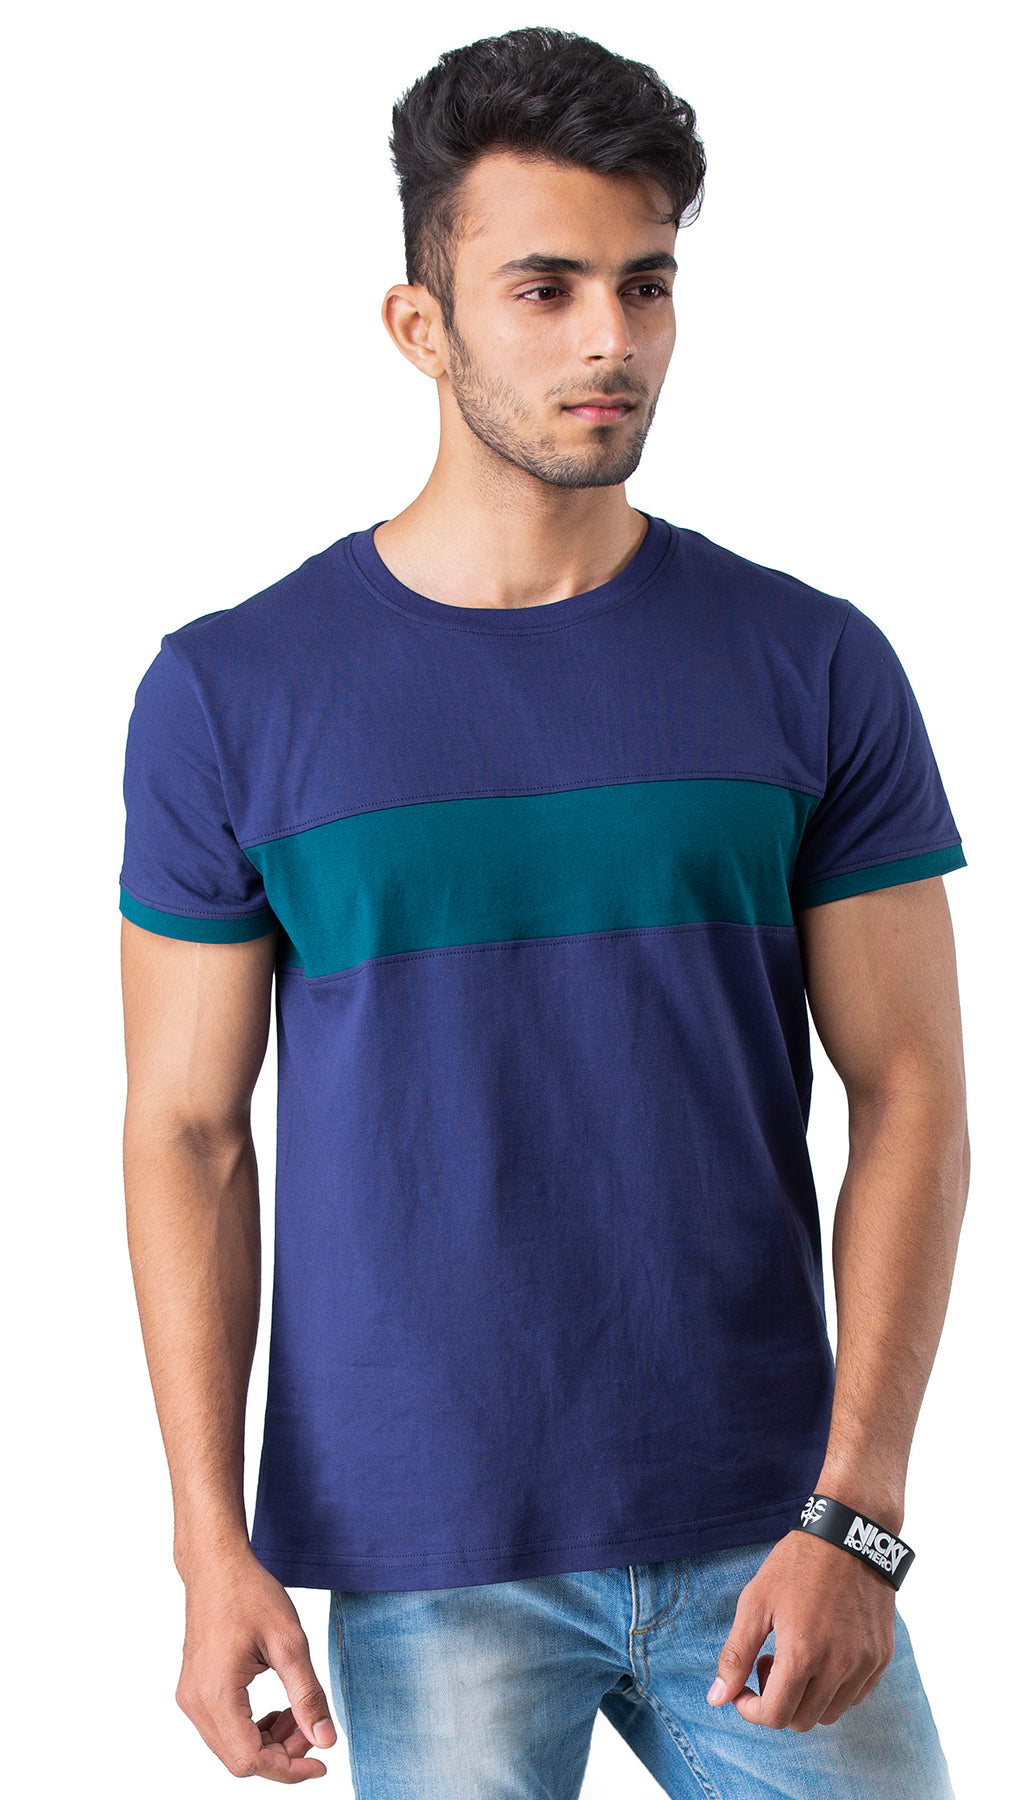 Half Sleeve Blue Green cut Round neck Tee